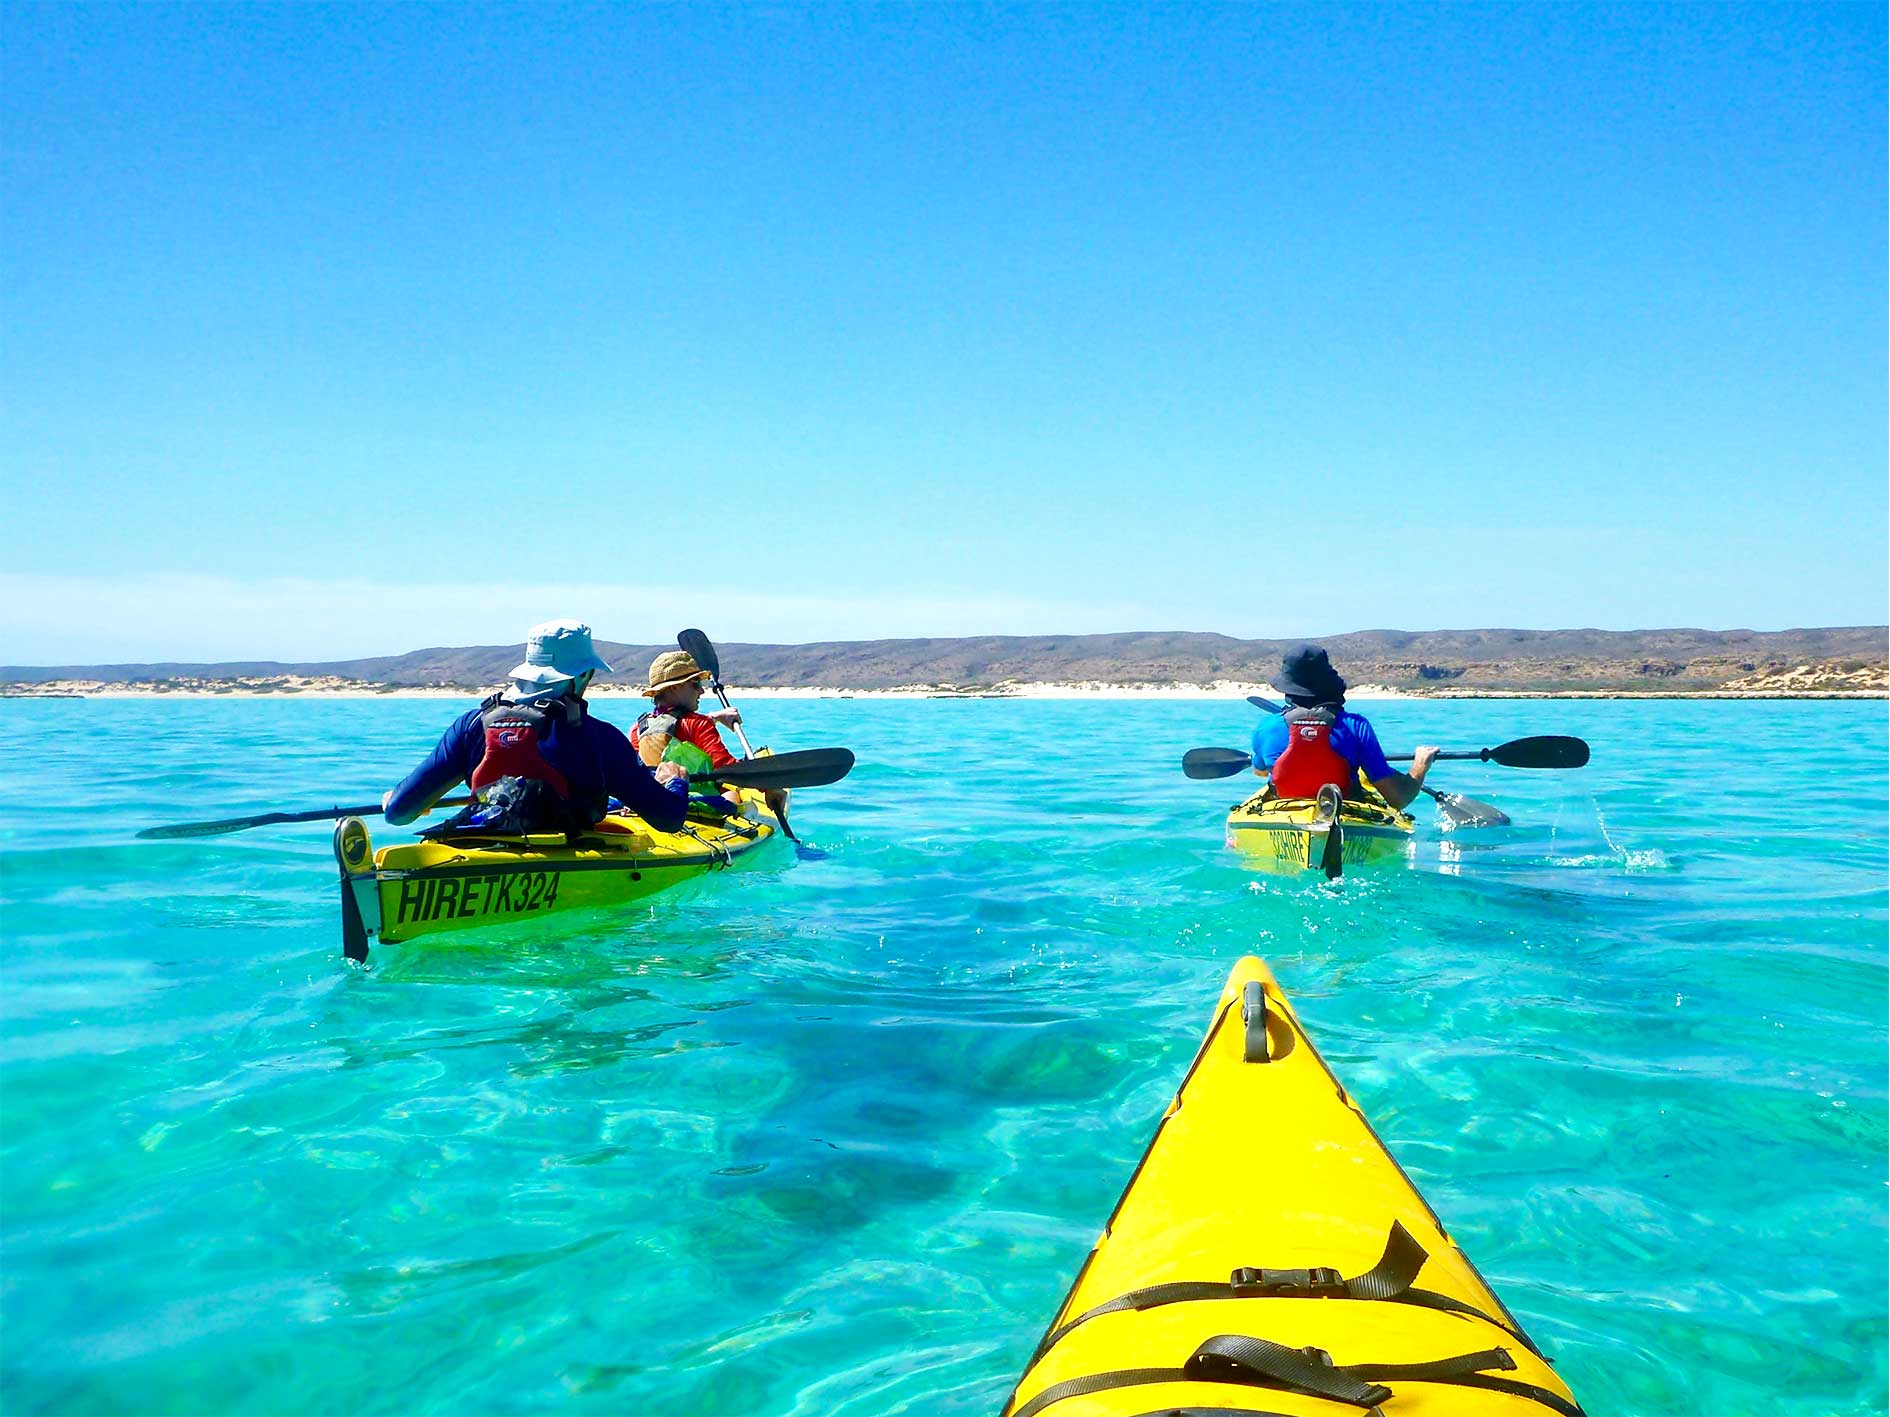 Sea Kayak Ningaloo, sea kayak, kayak, snorkel, eco tour, guided tour, Ningaloo Reef, Exmouth, Western Australia, Exmouth Adventure Co, Cape Range National Park, Coral Coast